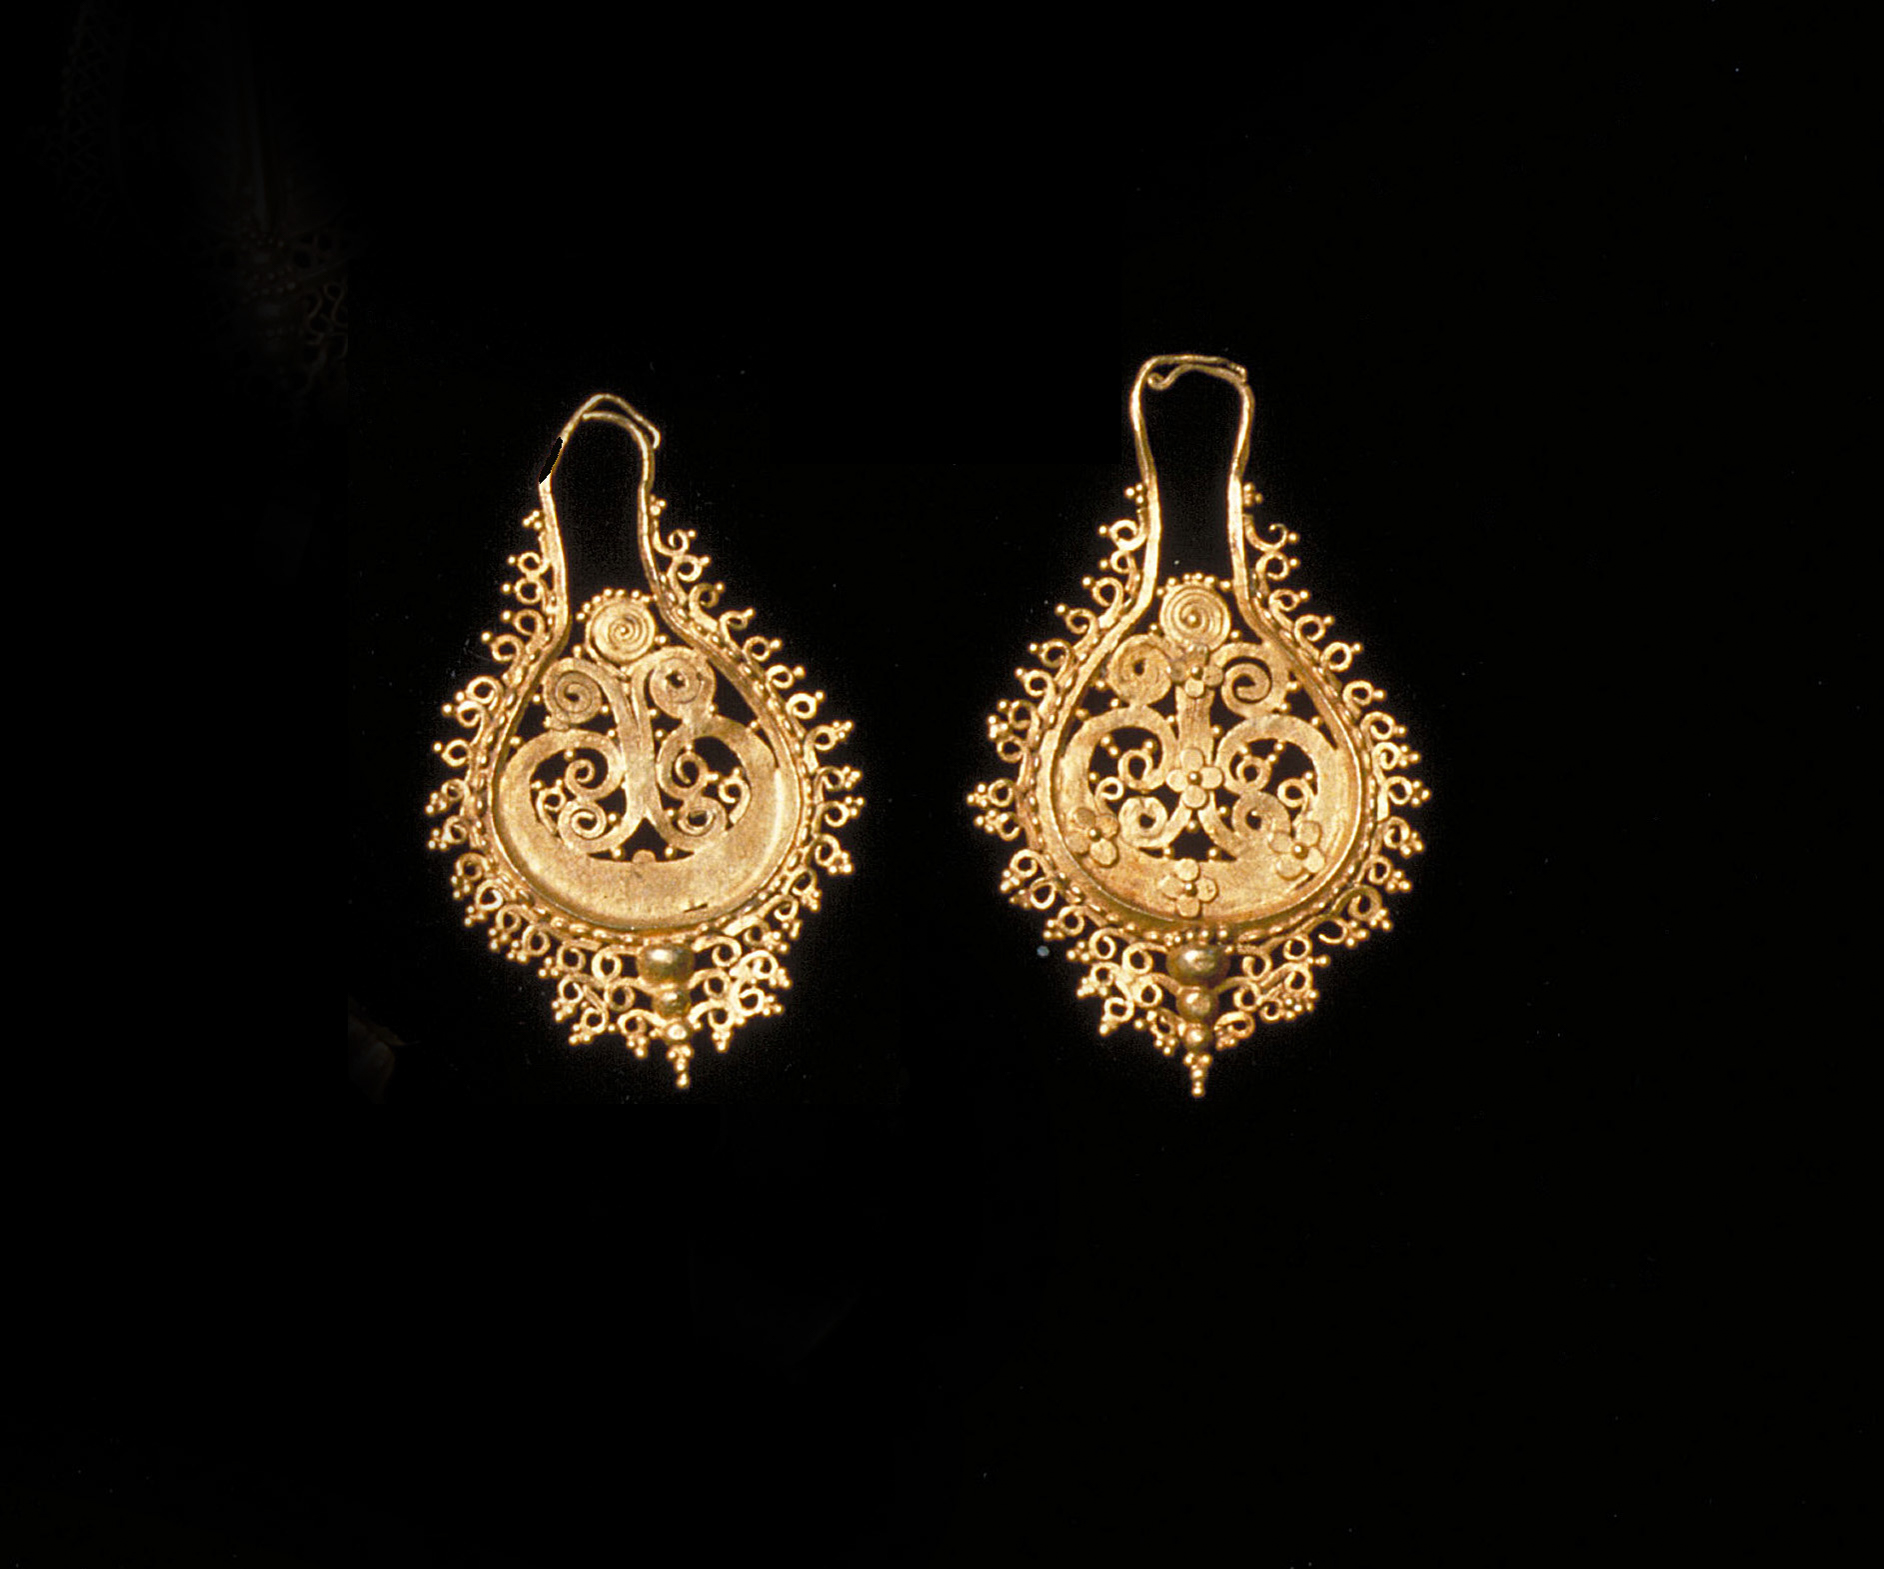 Pair of Ornate Gold Earrings | Flores © Asian Art Museum of San Francisco